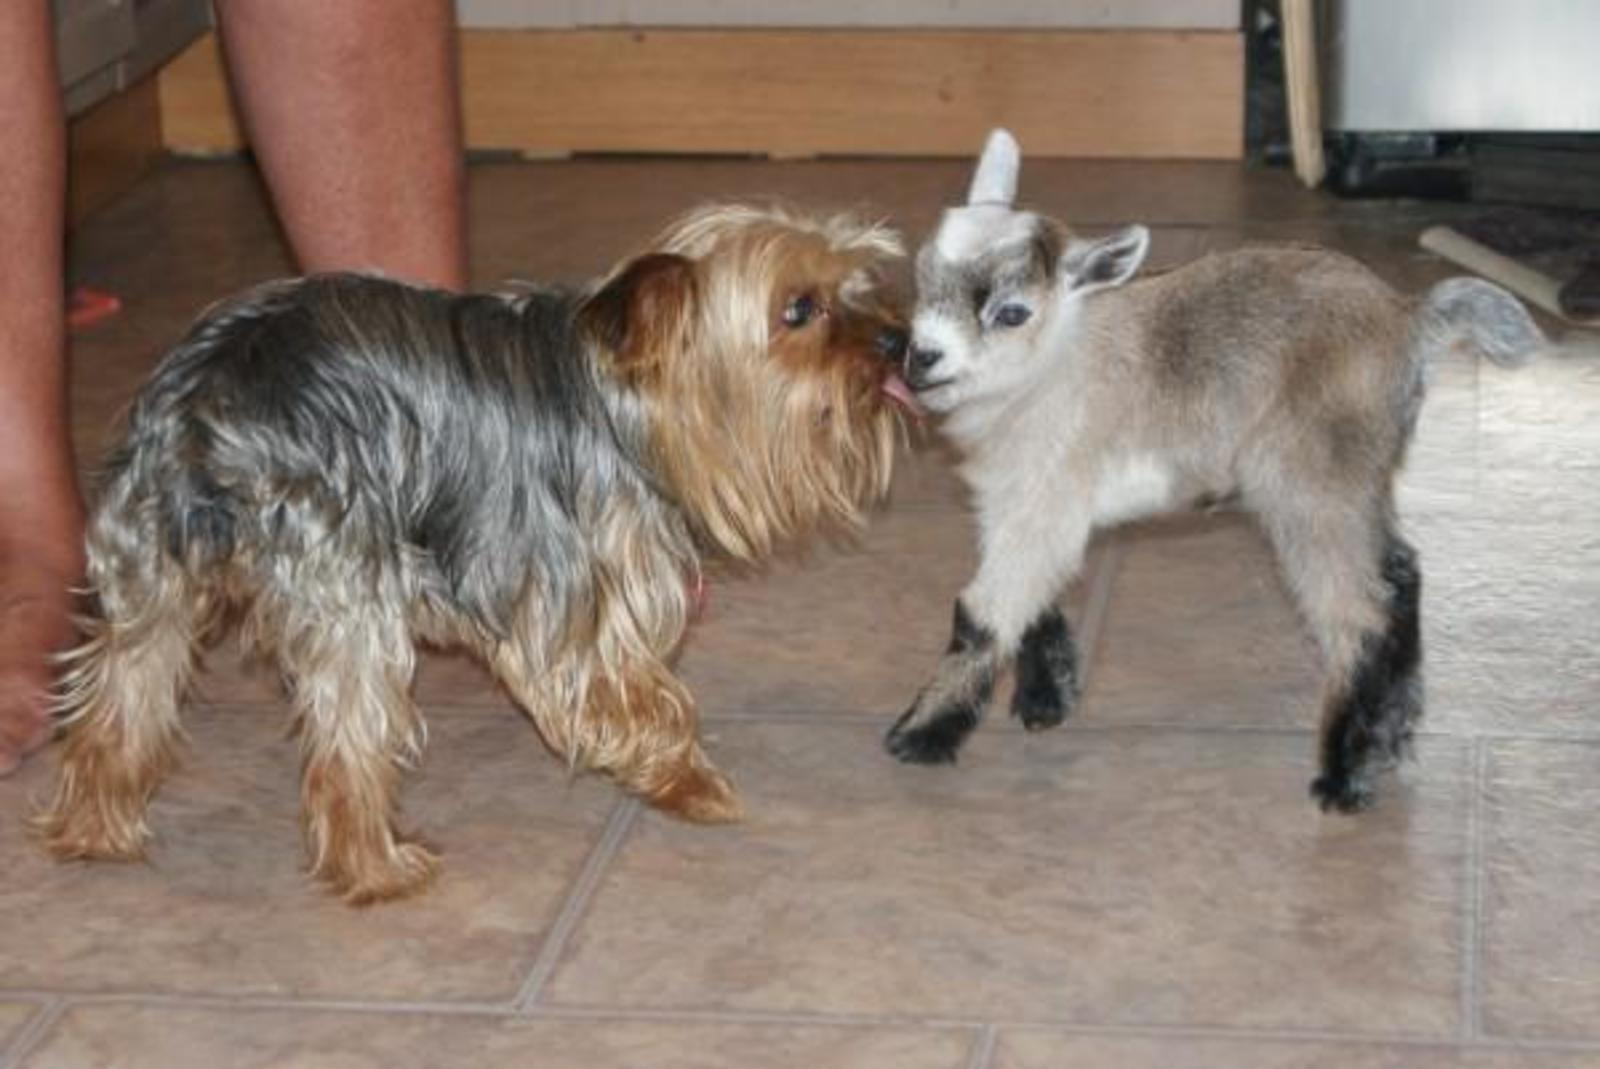 My yorkie Tyke and a baby pygmy goat | by Bev Armand